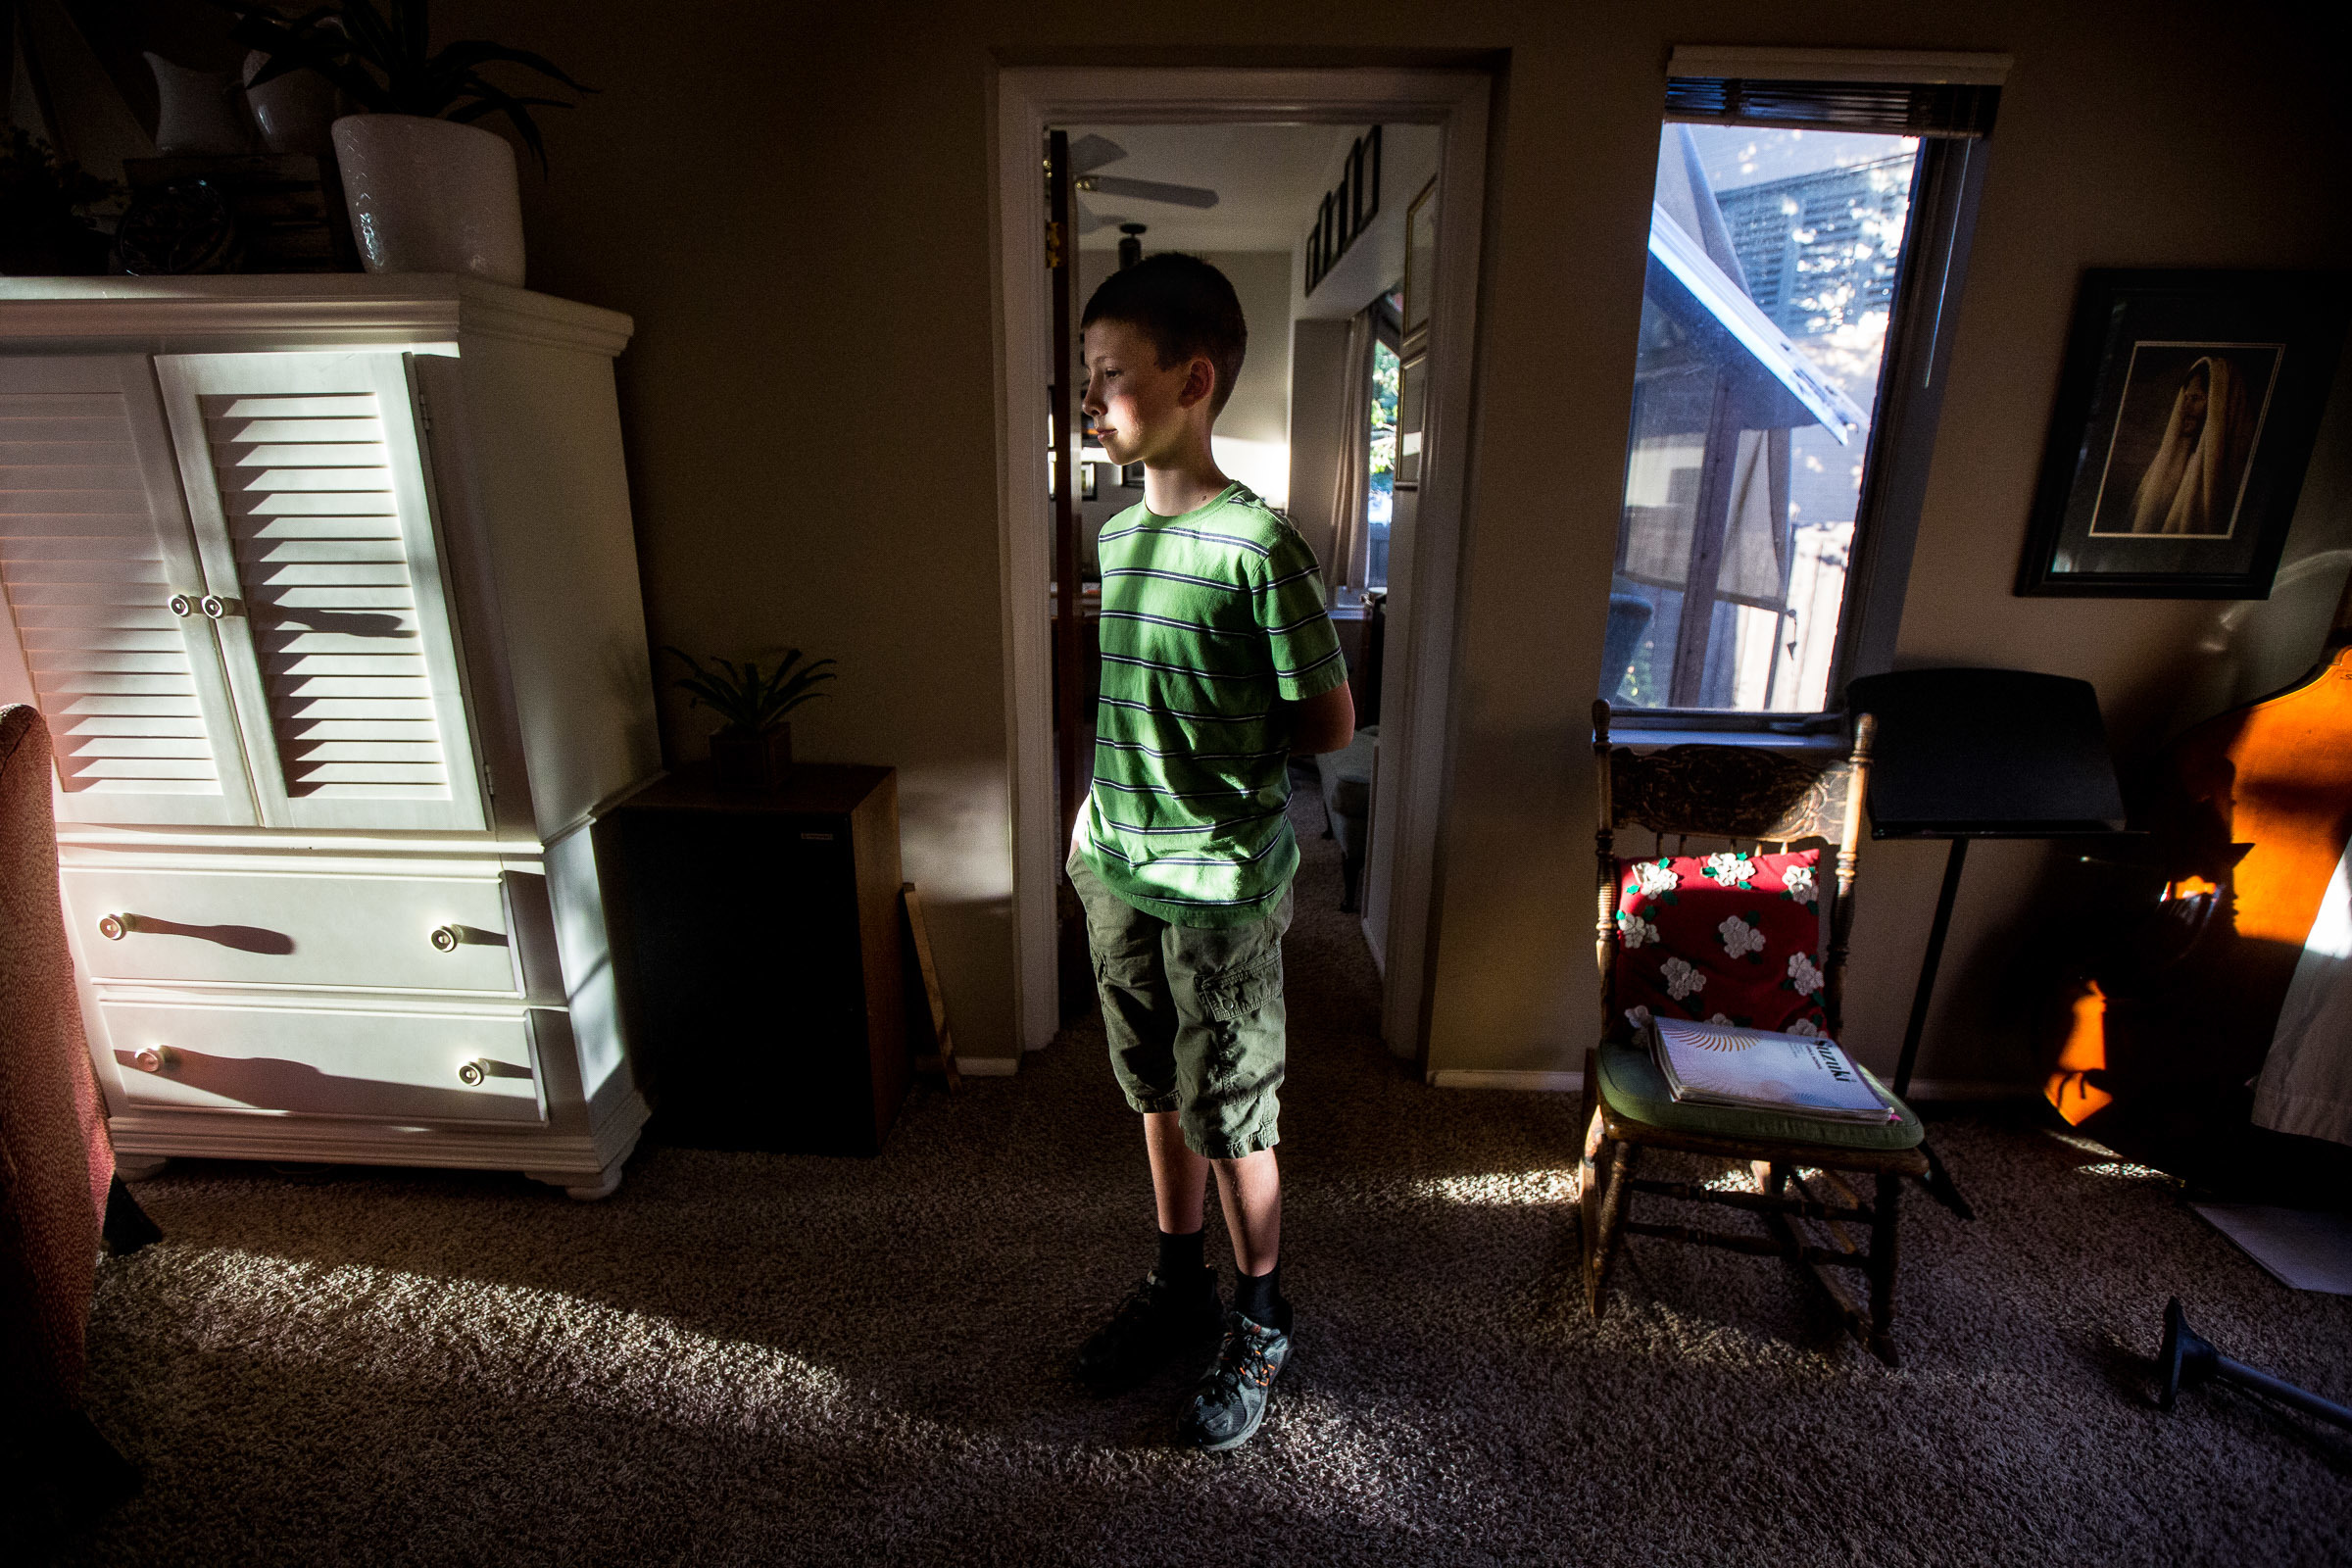 Owen, 12, gets ready for a backyard game called kubb with his family at his home in the Salt Lake area on Monday, Sept. 17, 2018. Owen was diagnosed with anxiety, and his family has learned how to help and support him as he copes with his anxious tendenci